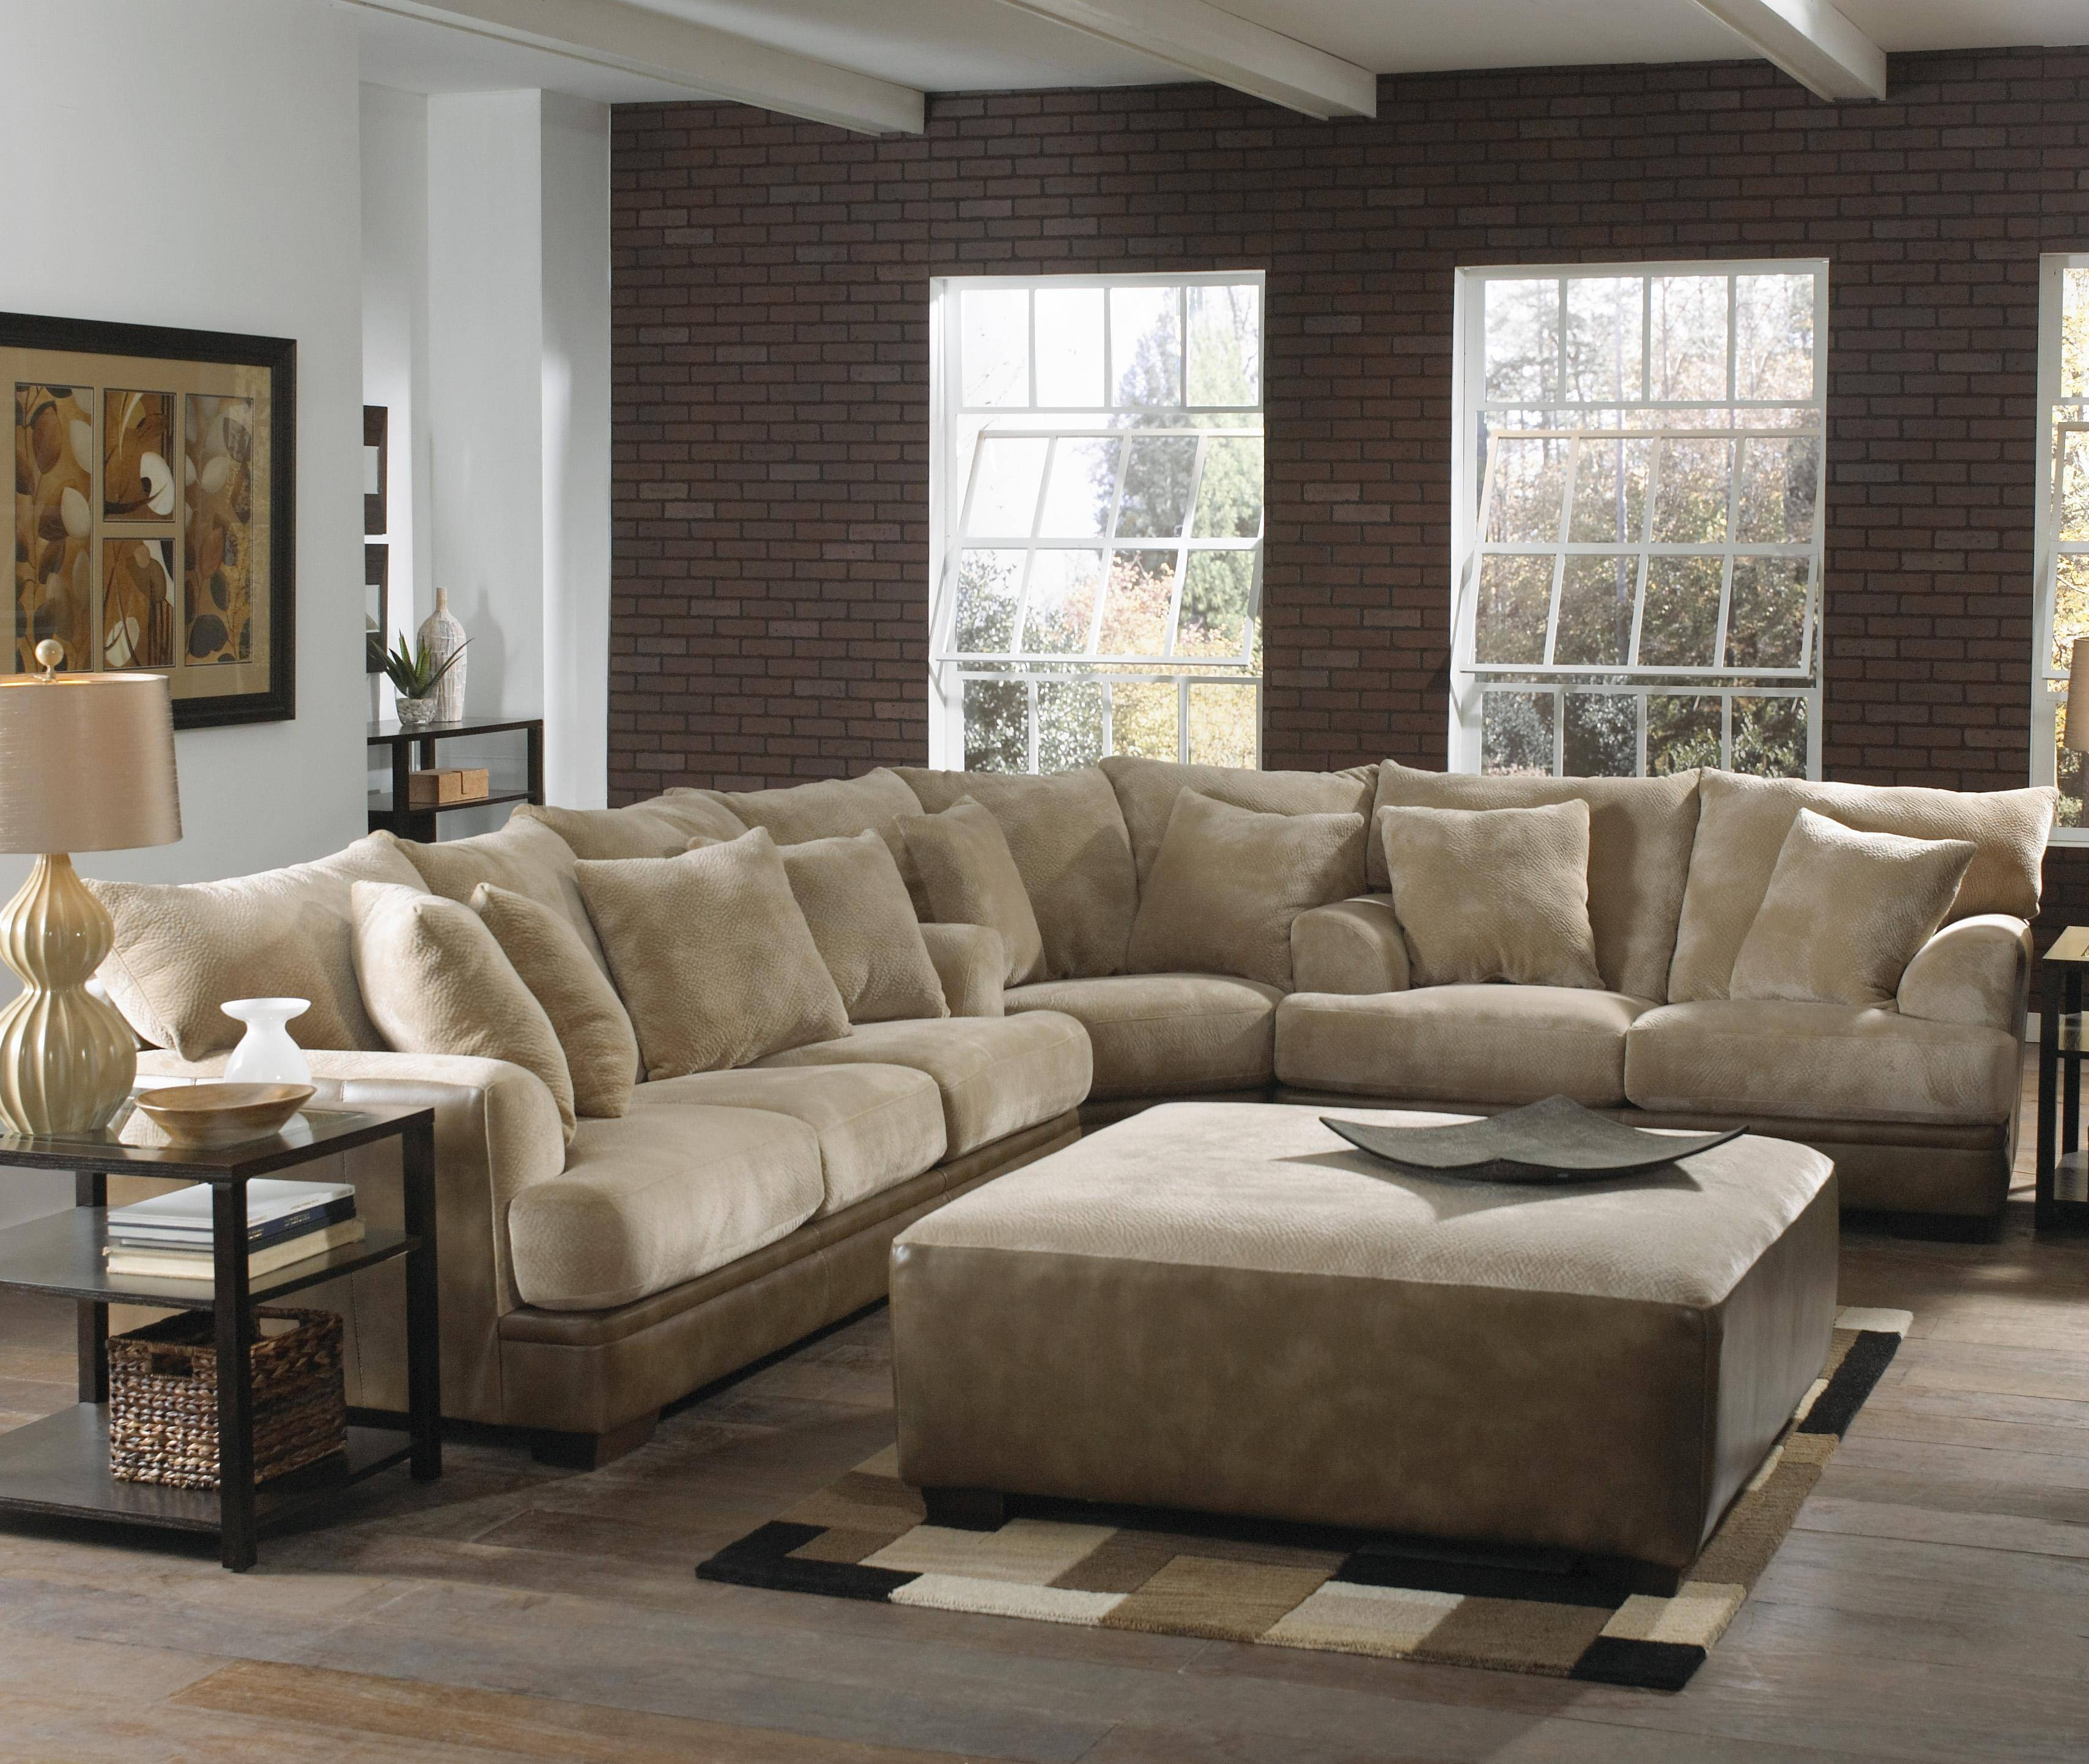 Sofas: Sectional Sofas On Sale | Oversized Sofas | Ashley in Sectinal Sofas (Image 26 of 30)